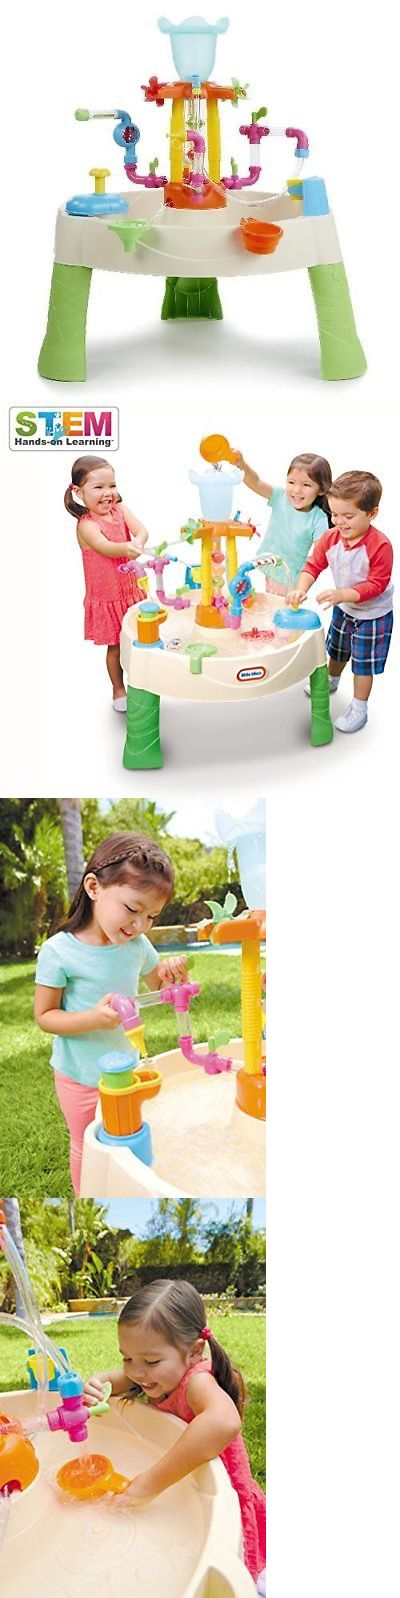 Sandbox Toys and Sandboxes 145990: Fountain Factory Water Table Little Tikes Kids Toddlers Outdoor Toys Sensory New -> BUY IT NOW ONLY: $59.61 on eBay!